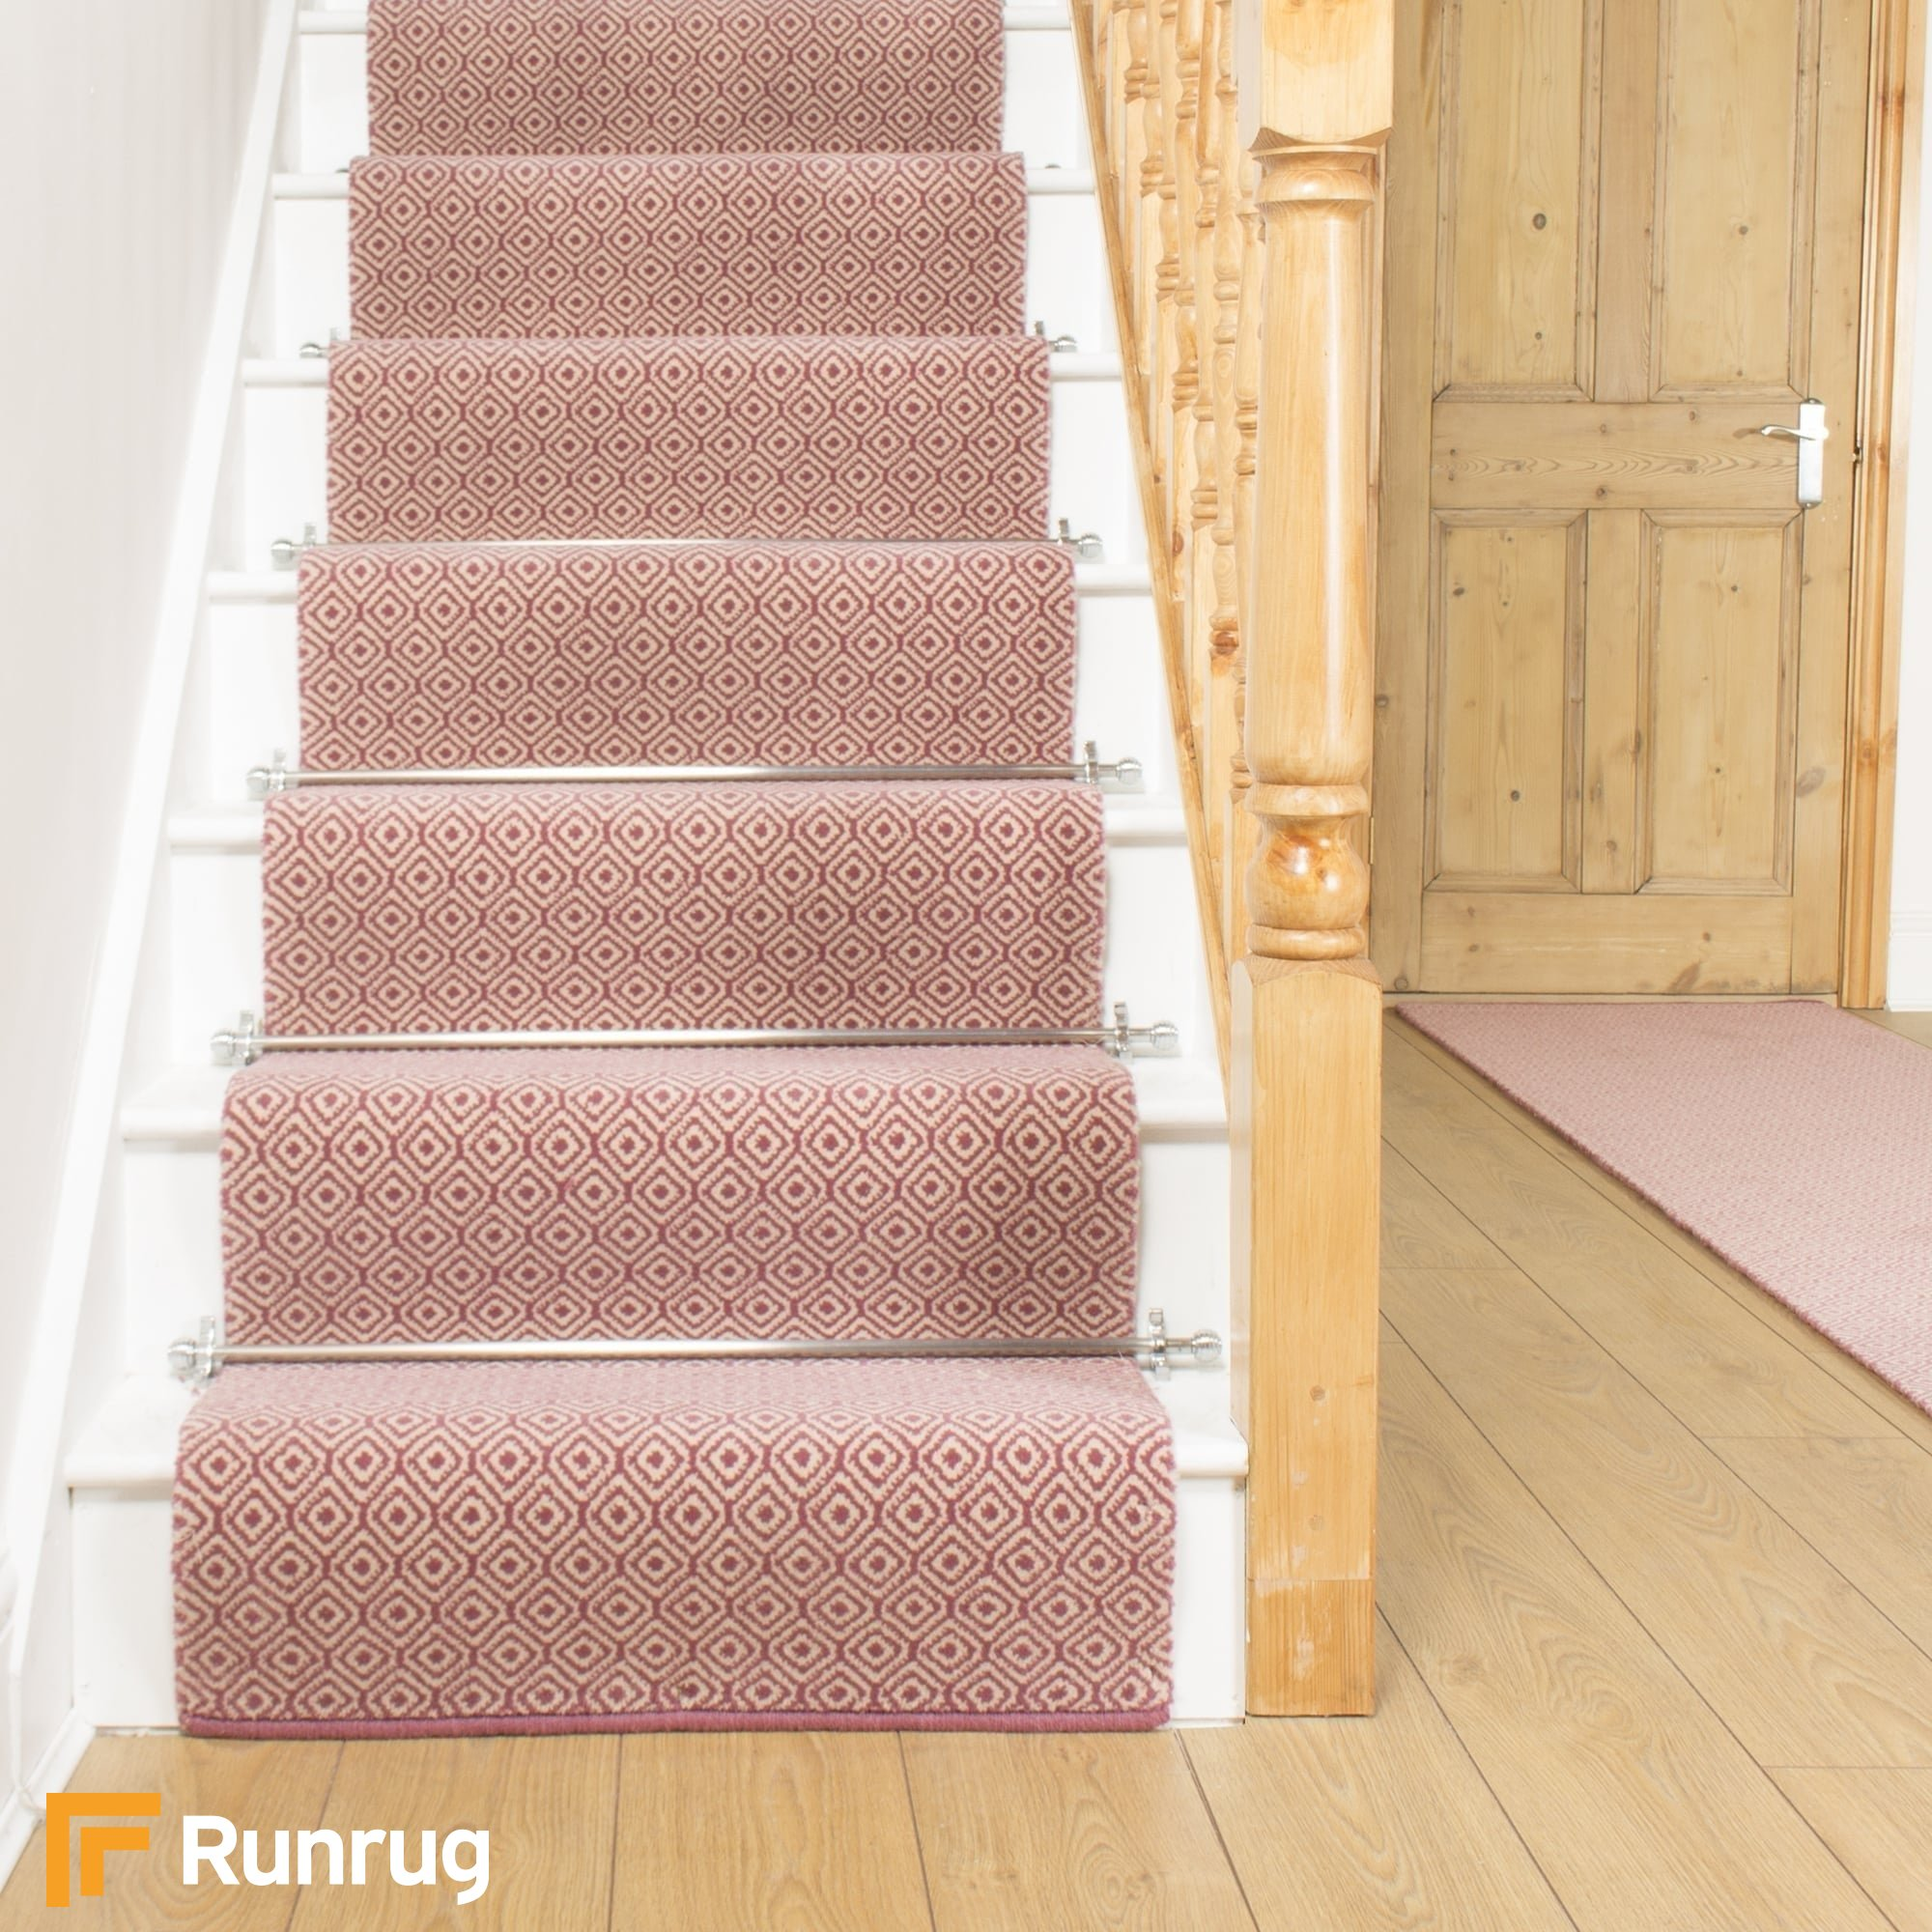 Quirky tess pink 7005 stair runner for Cheap flooring alternatives to carpet